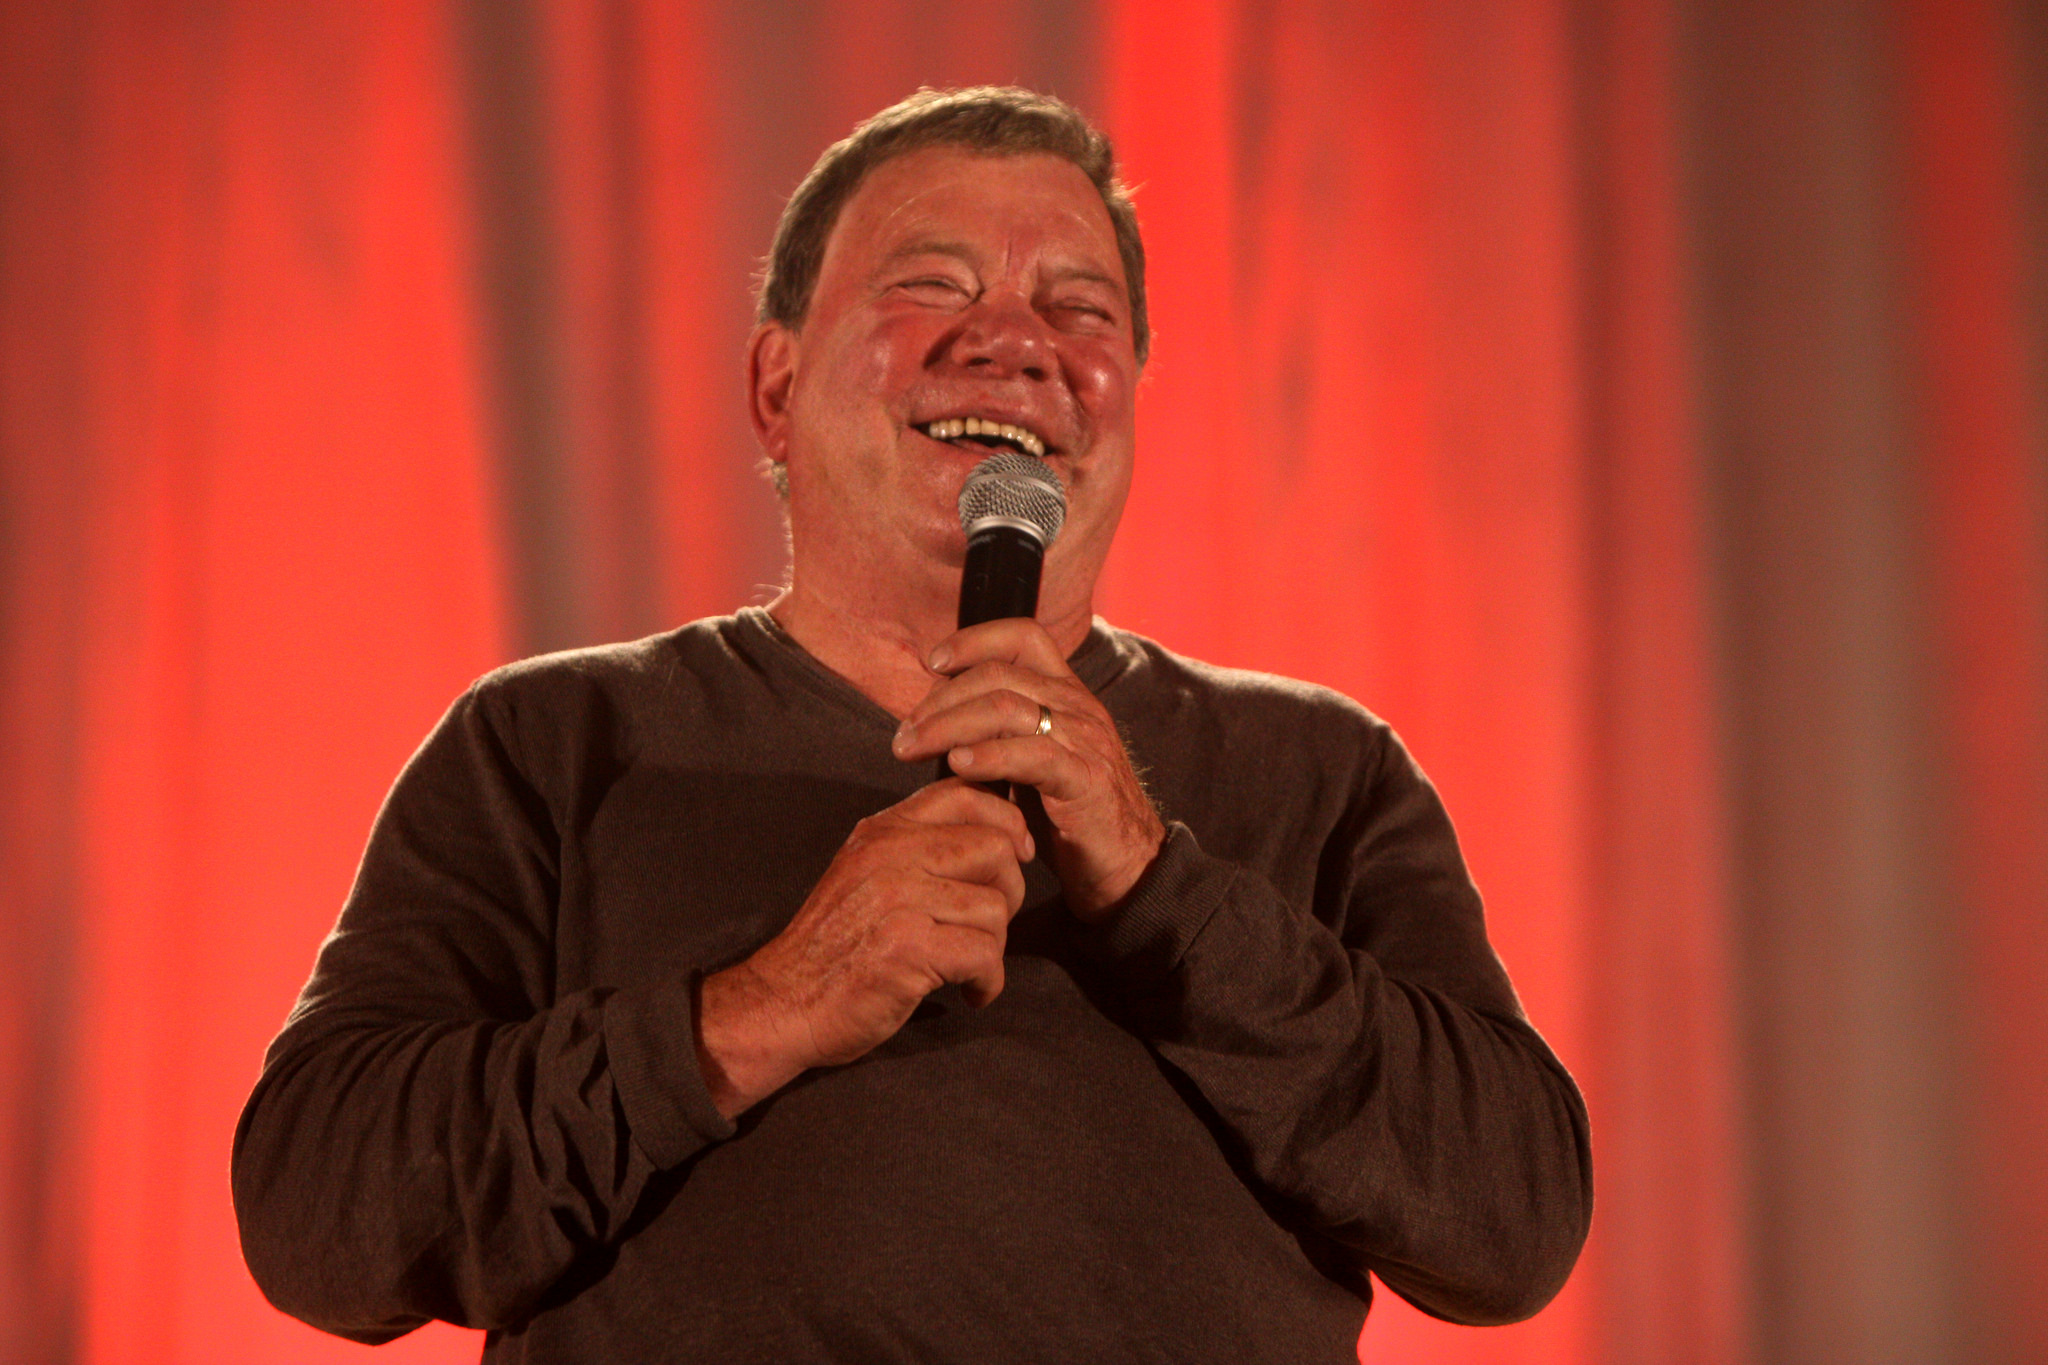 Did William Shatner Record a Christmas Album With Iggy Pop and Henry Rollins?